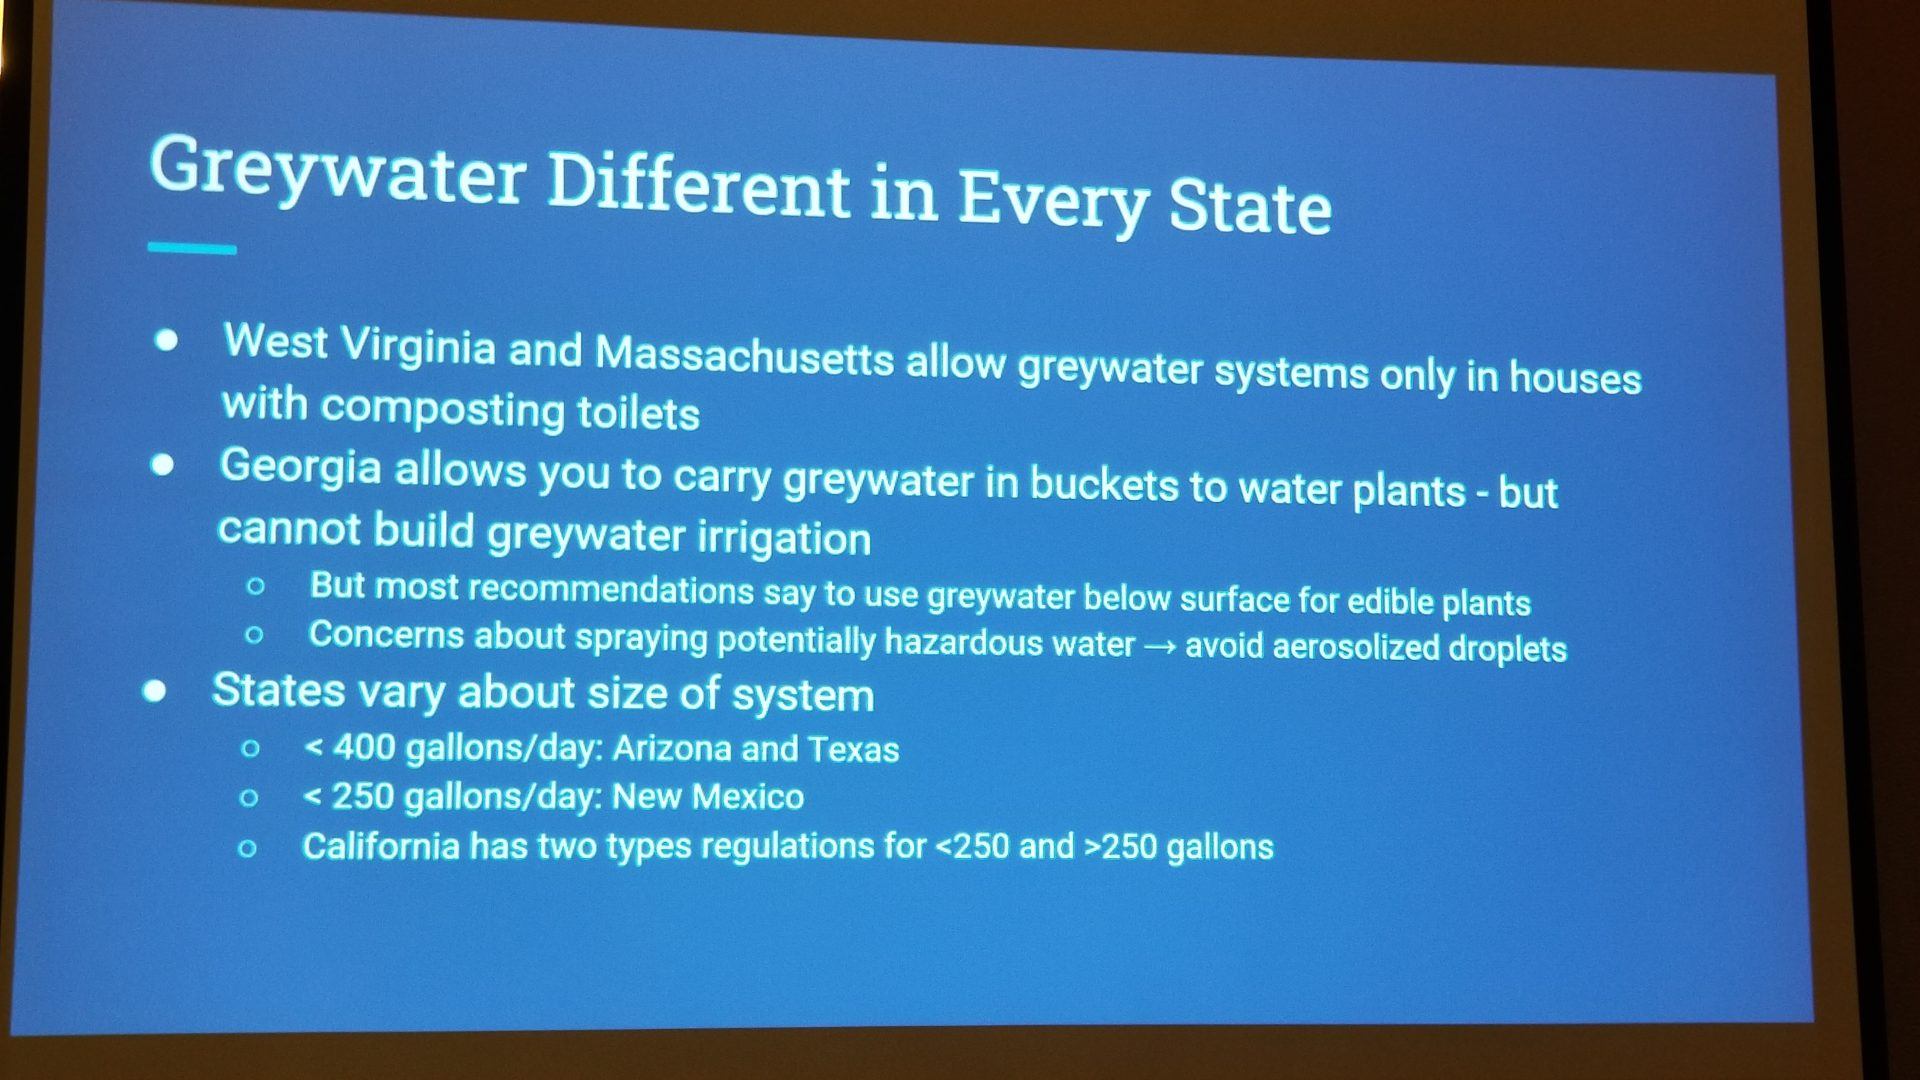 #MACoCon Attendees Learn About Graywater Reuse